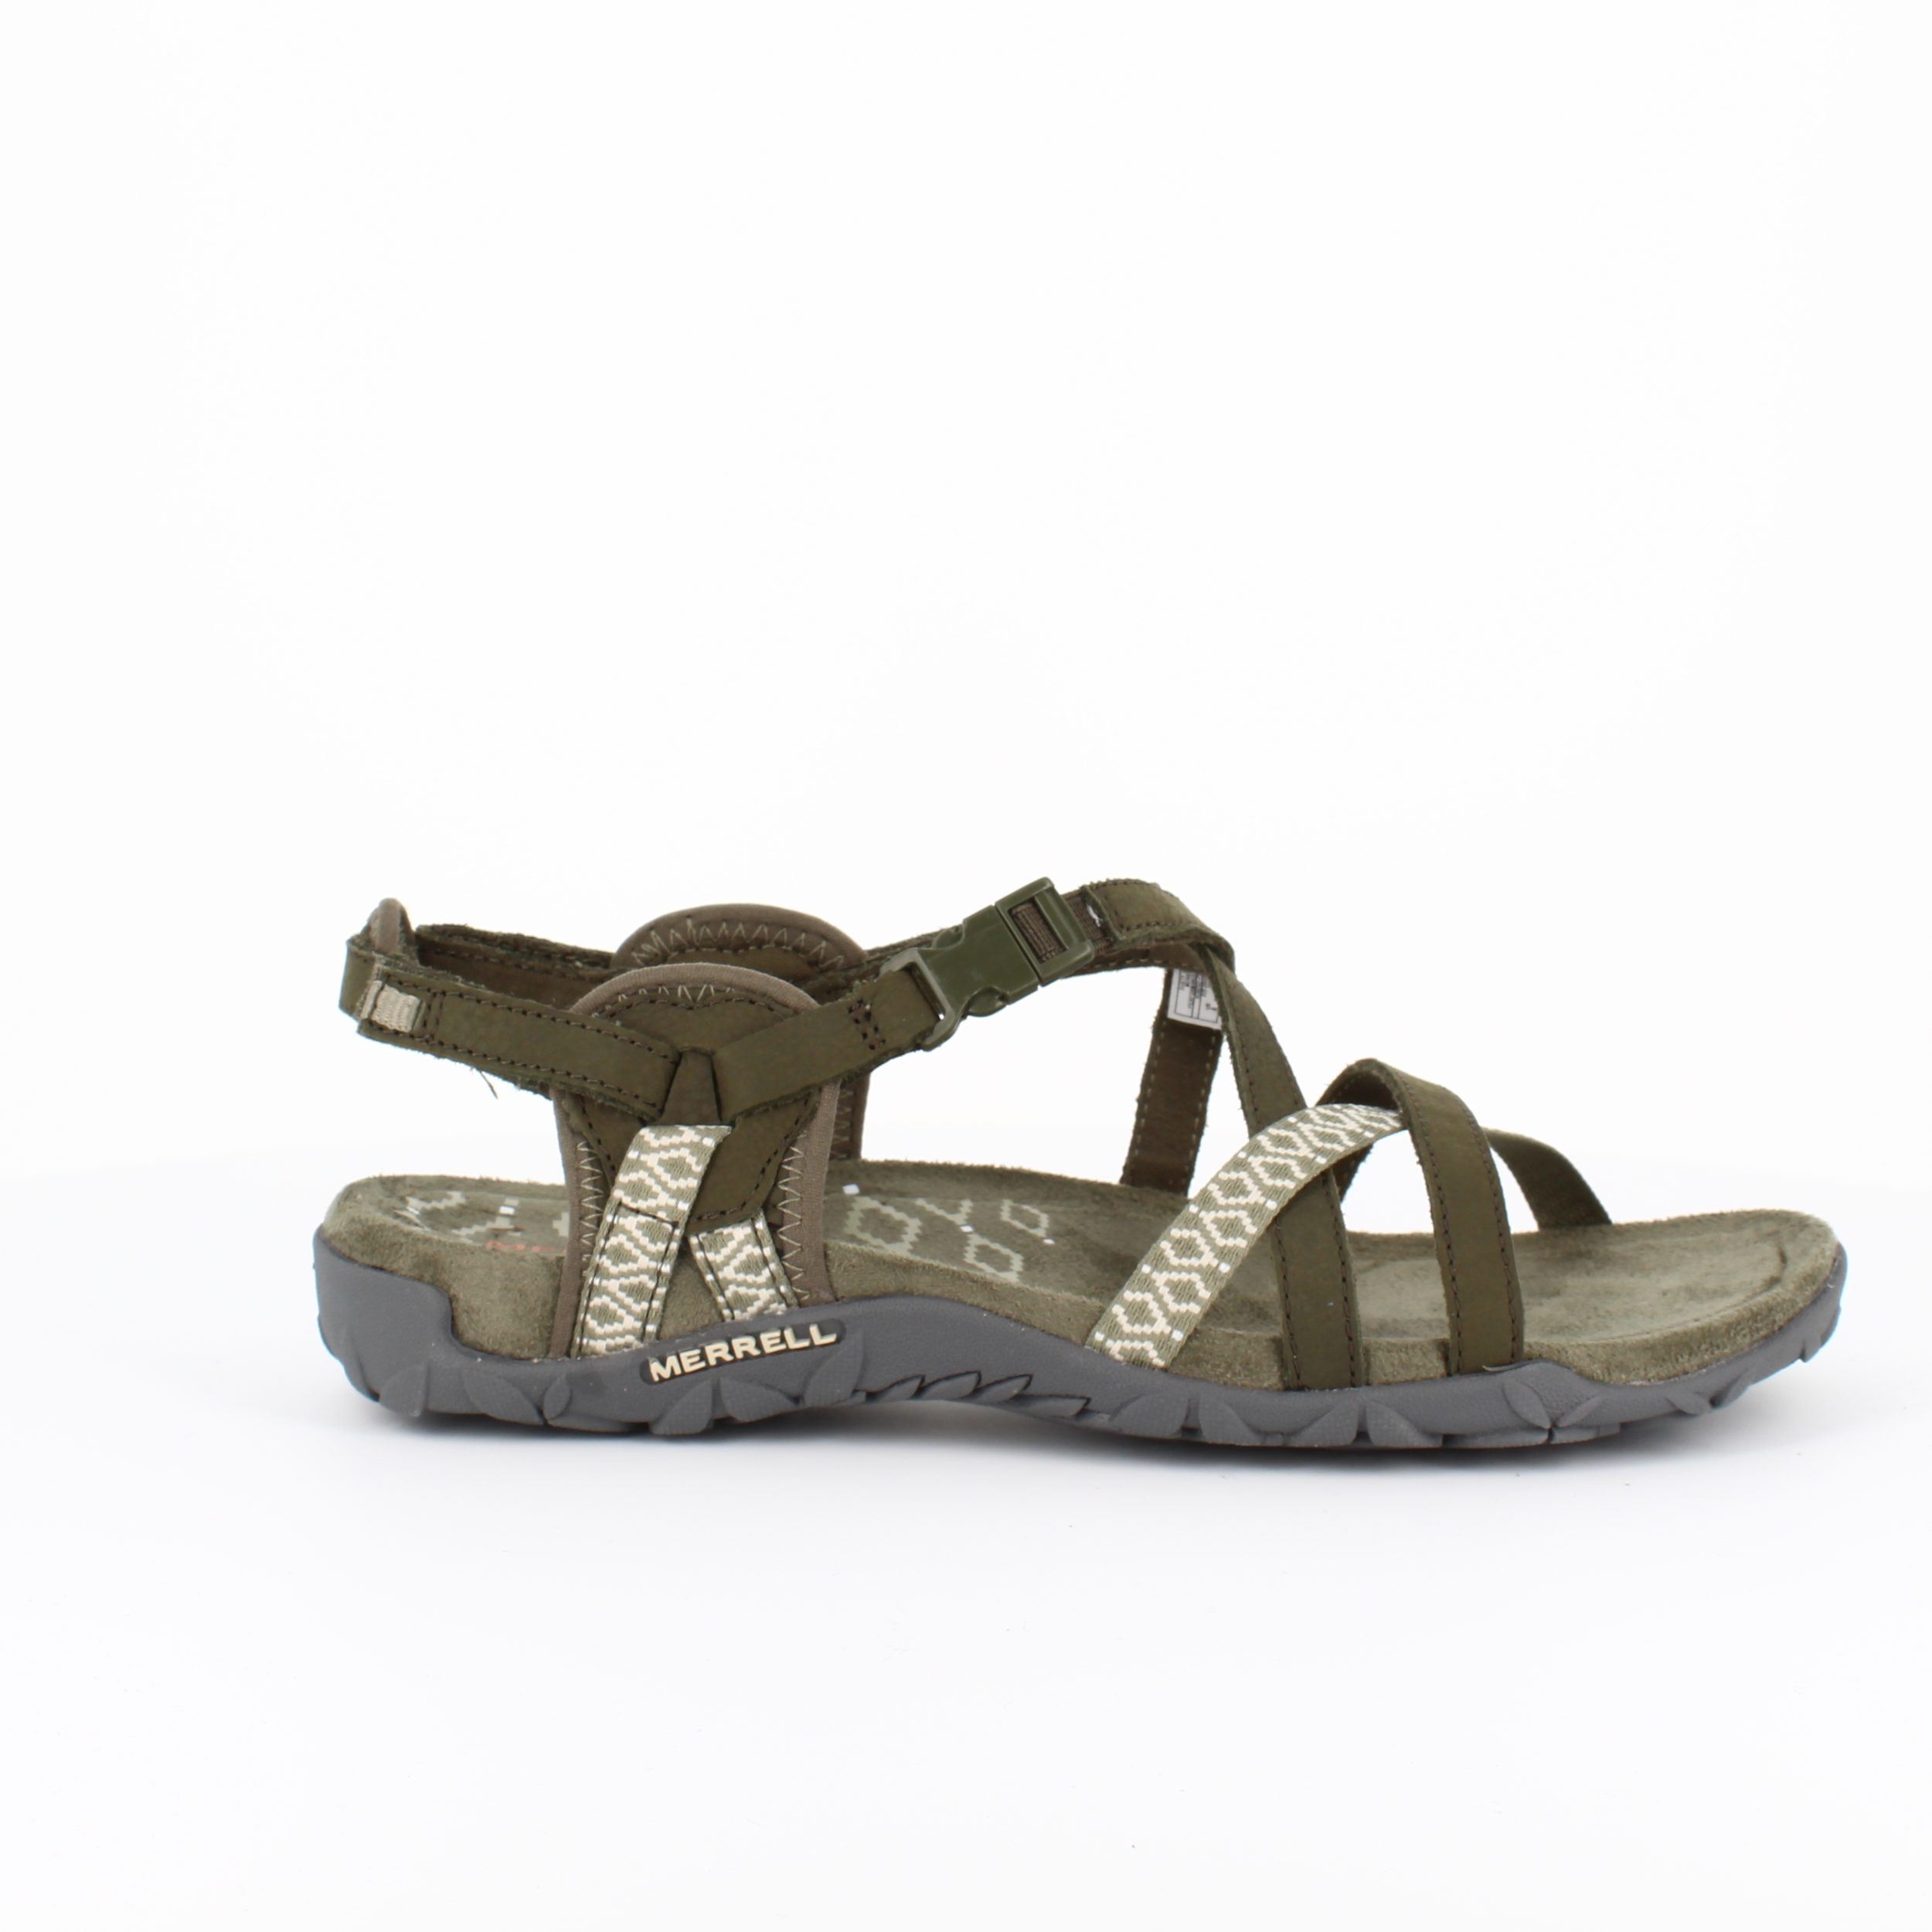 Image of   Olivenfarvet sandal, Terran Lattice sandal fra Merrell - 36